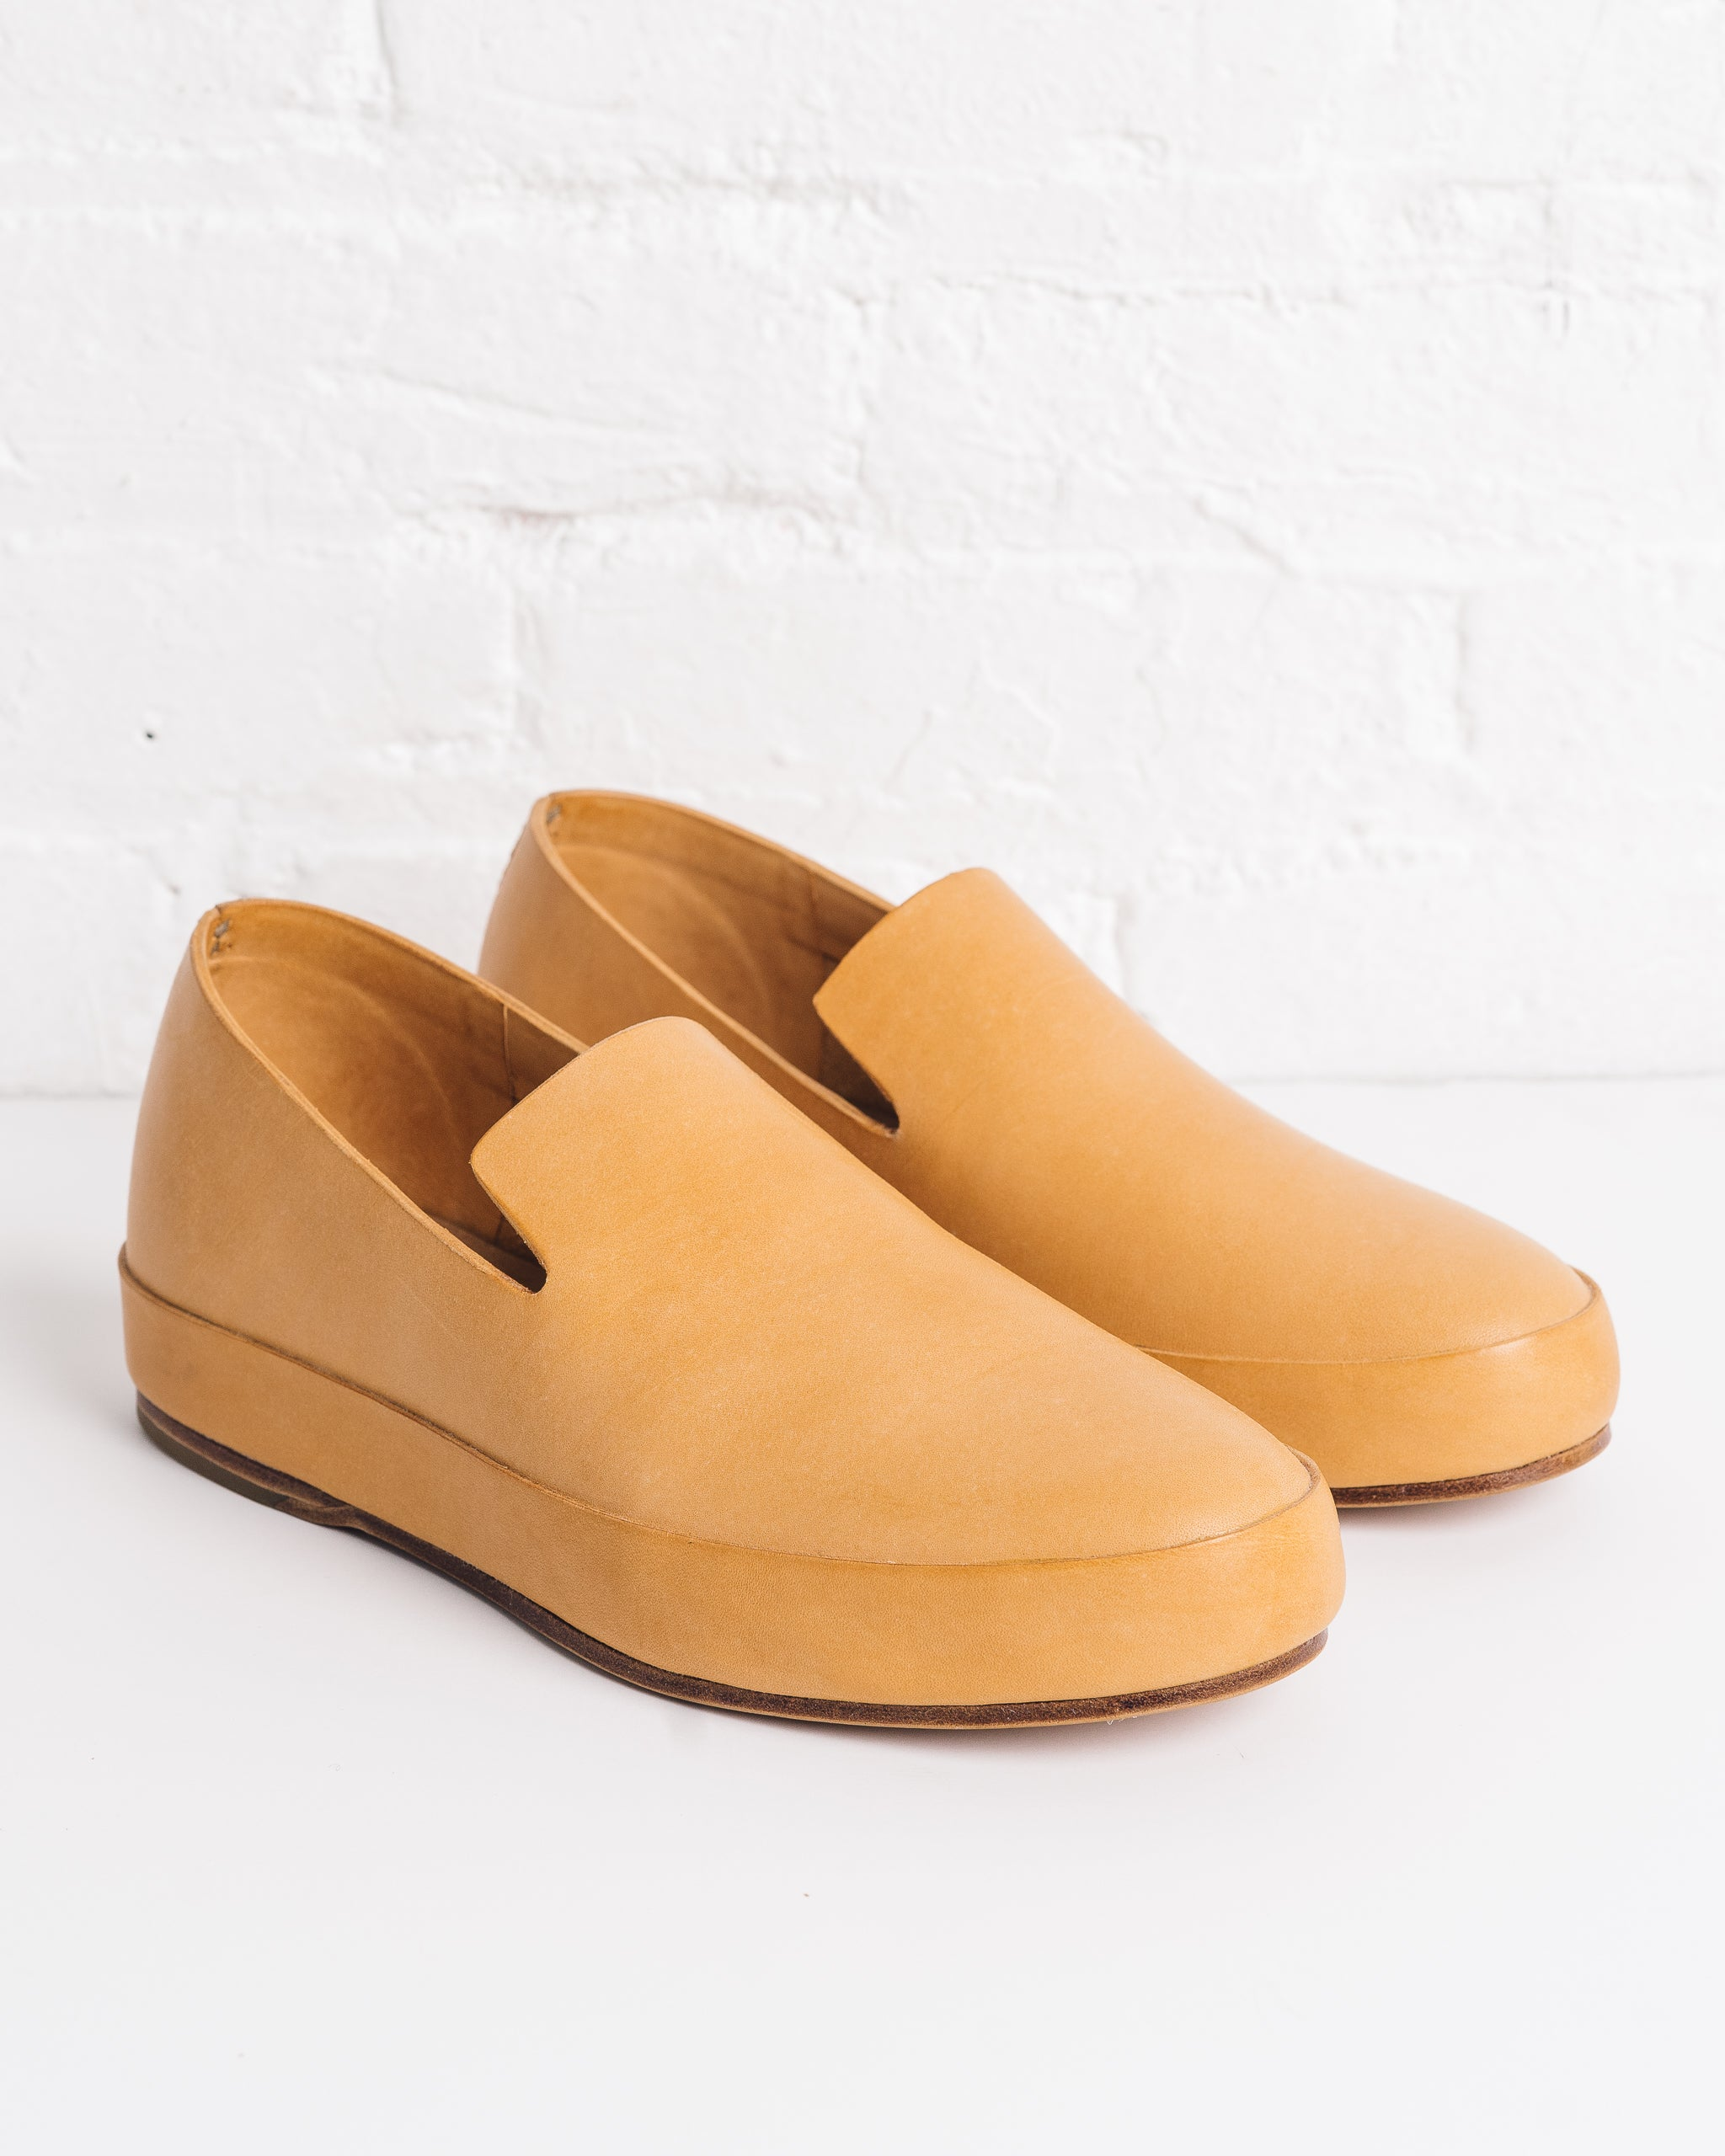 Feit Hand Sewn Slippers Natural, Men's